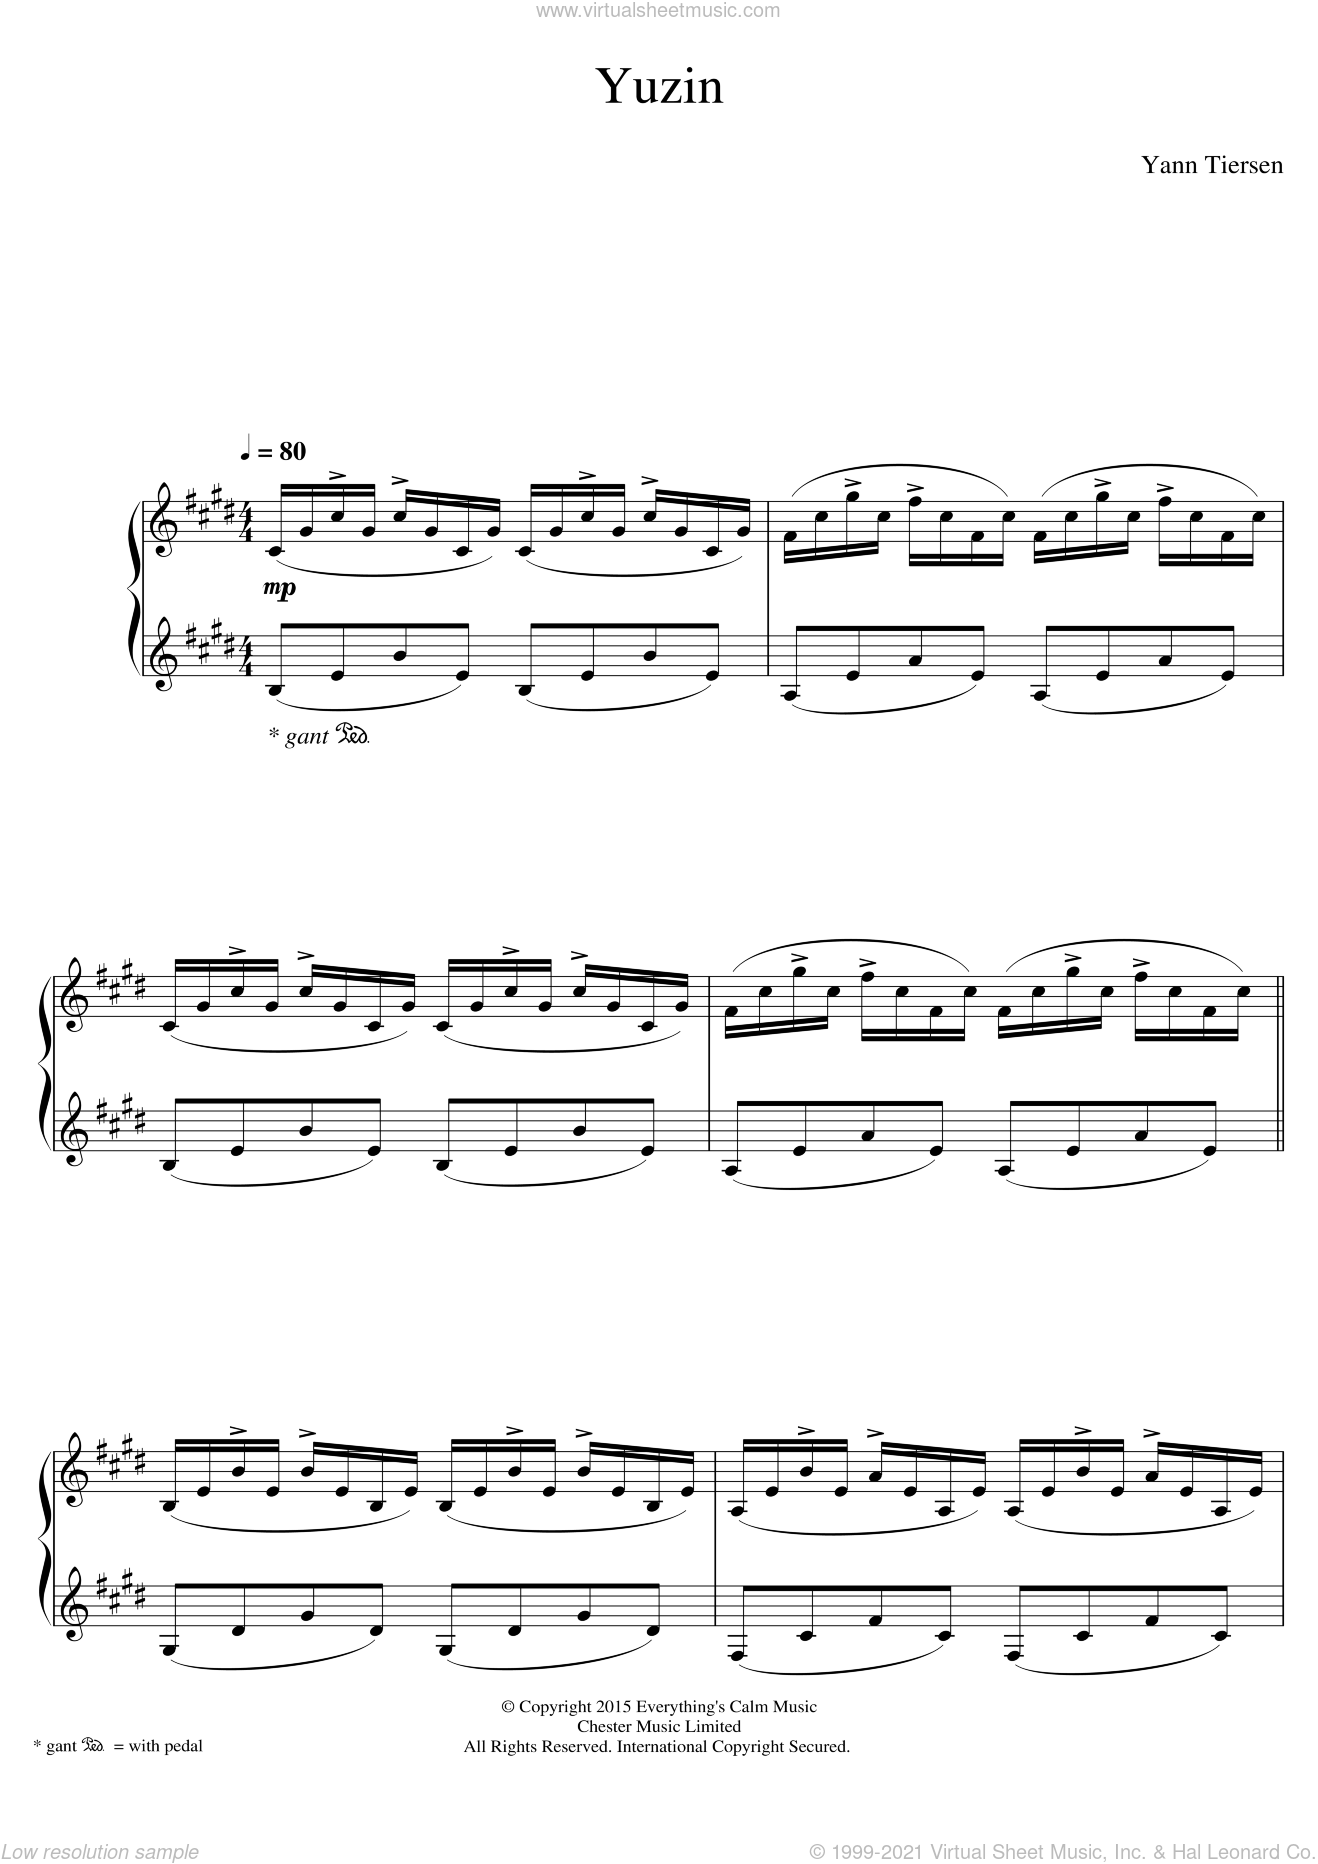 Yuzin sheet music for piano solo by Yann Tiersen. Score Image Preview.